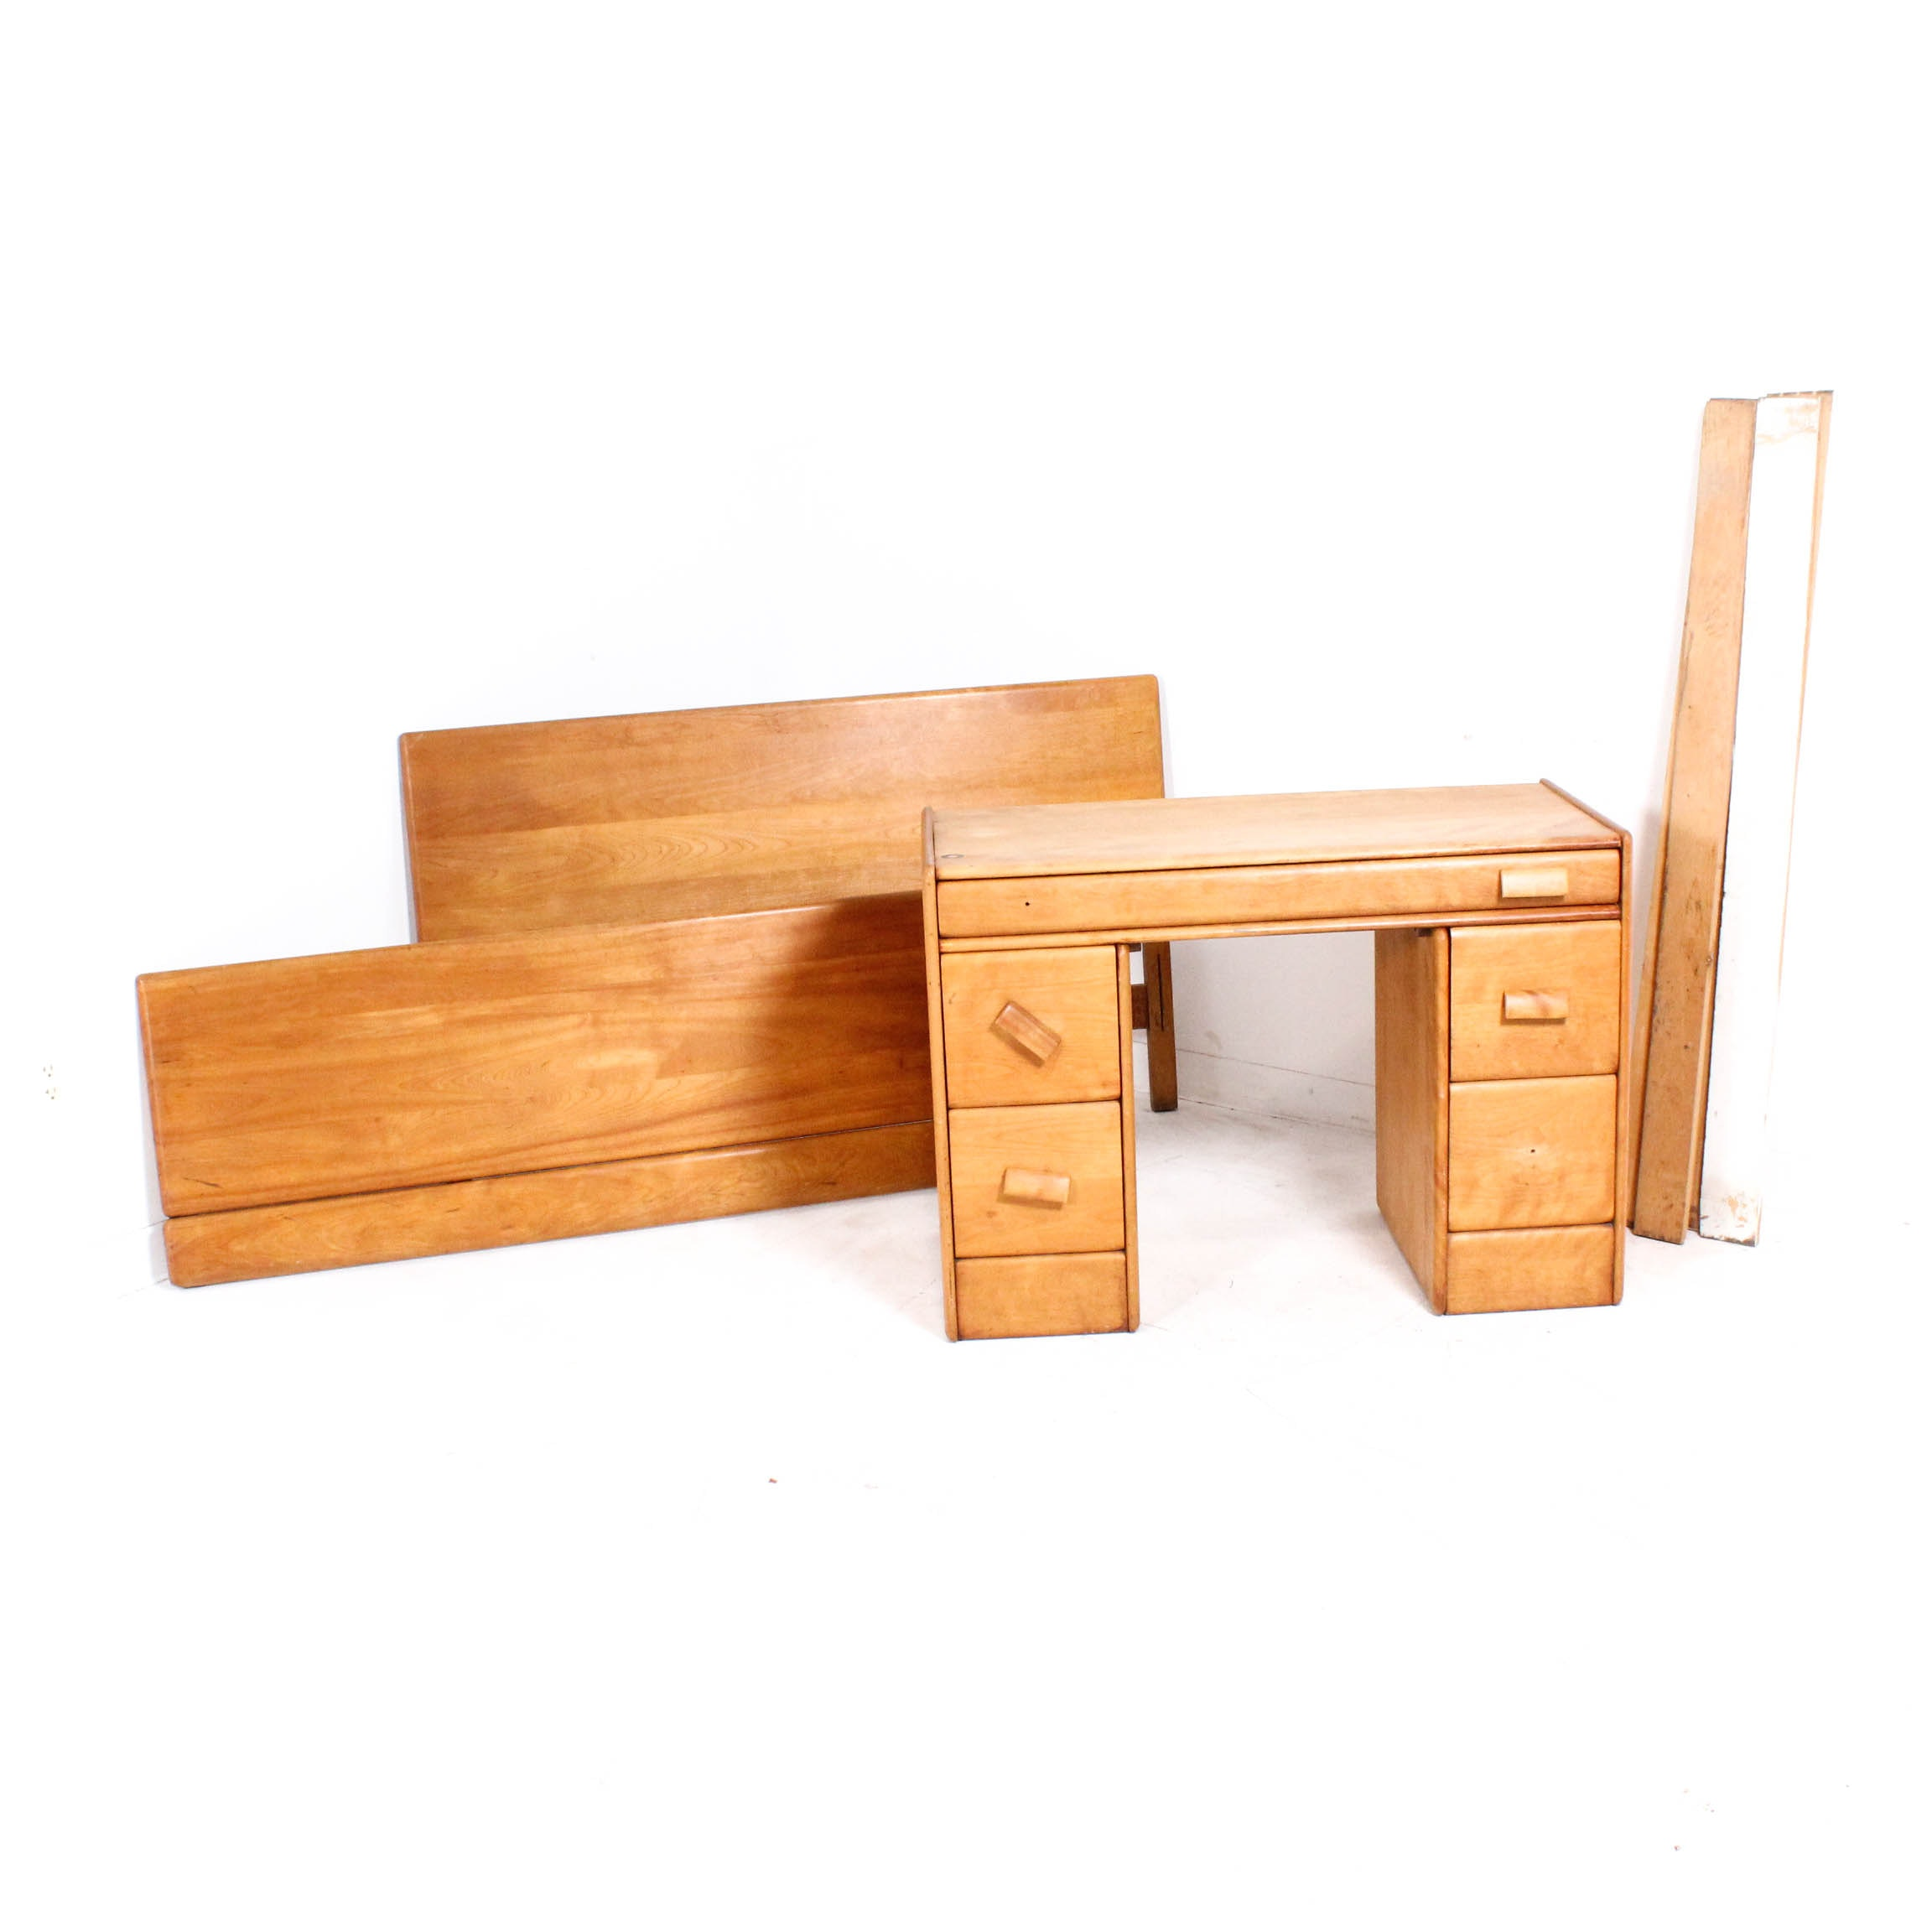 Vintage Kneehole Desk and Twin Bed Frame